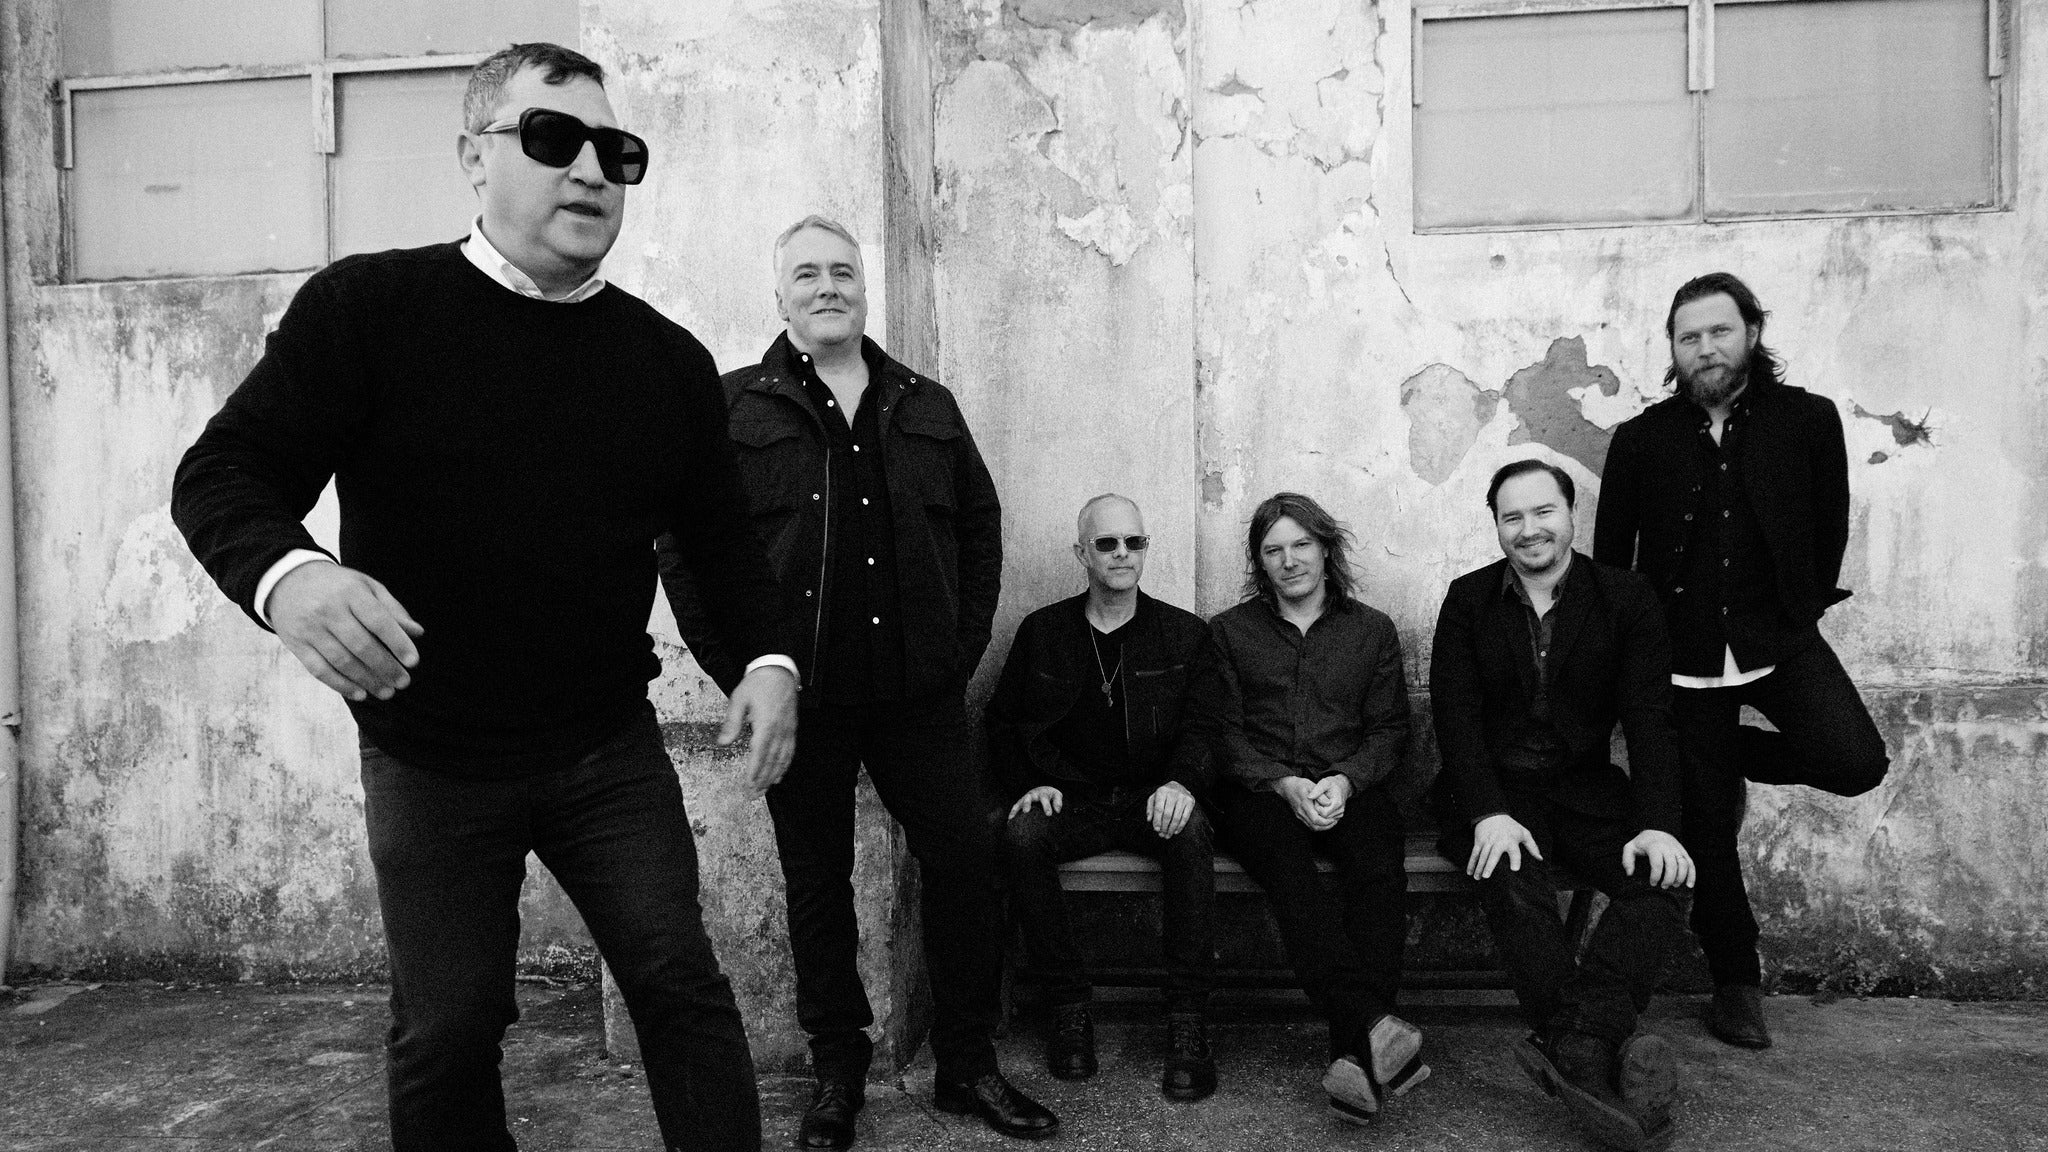 The Afghan Whigs & Built To Spill